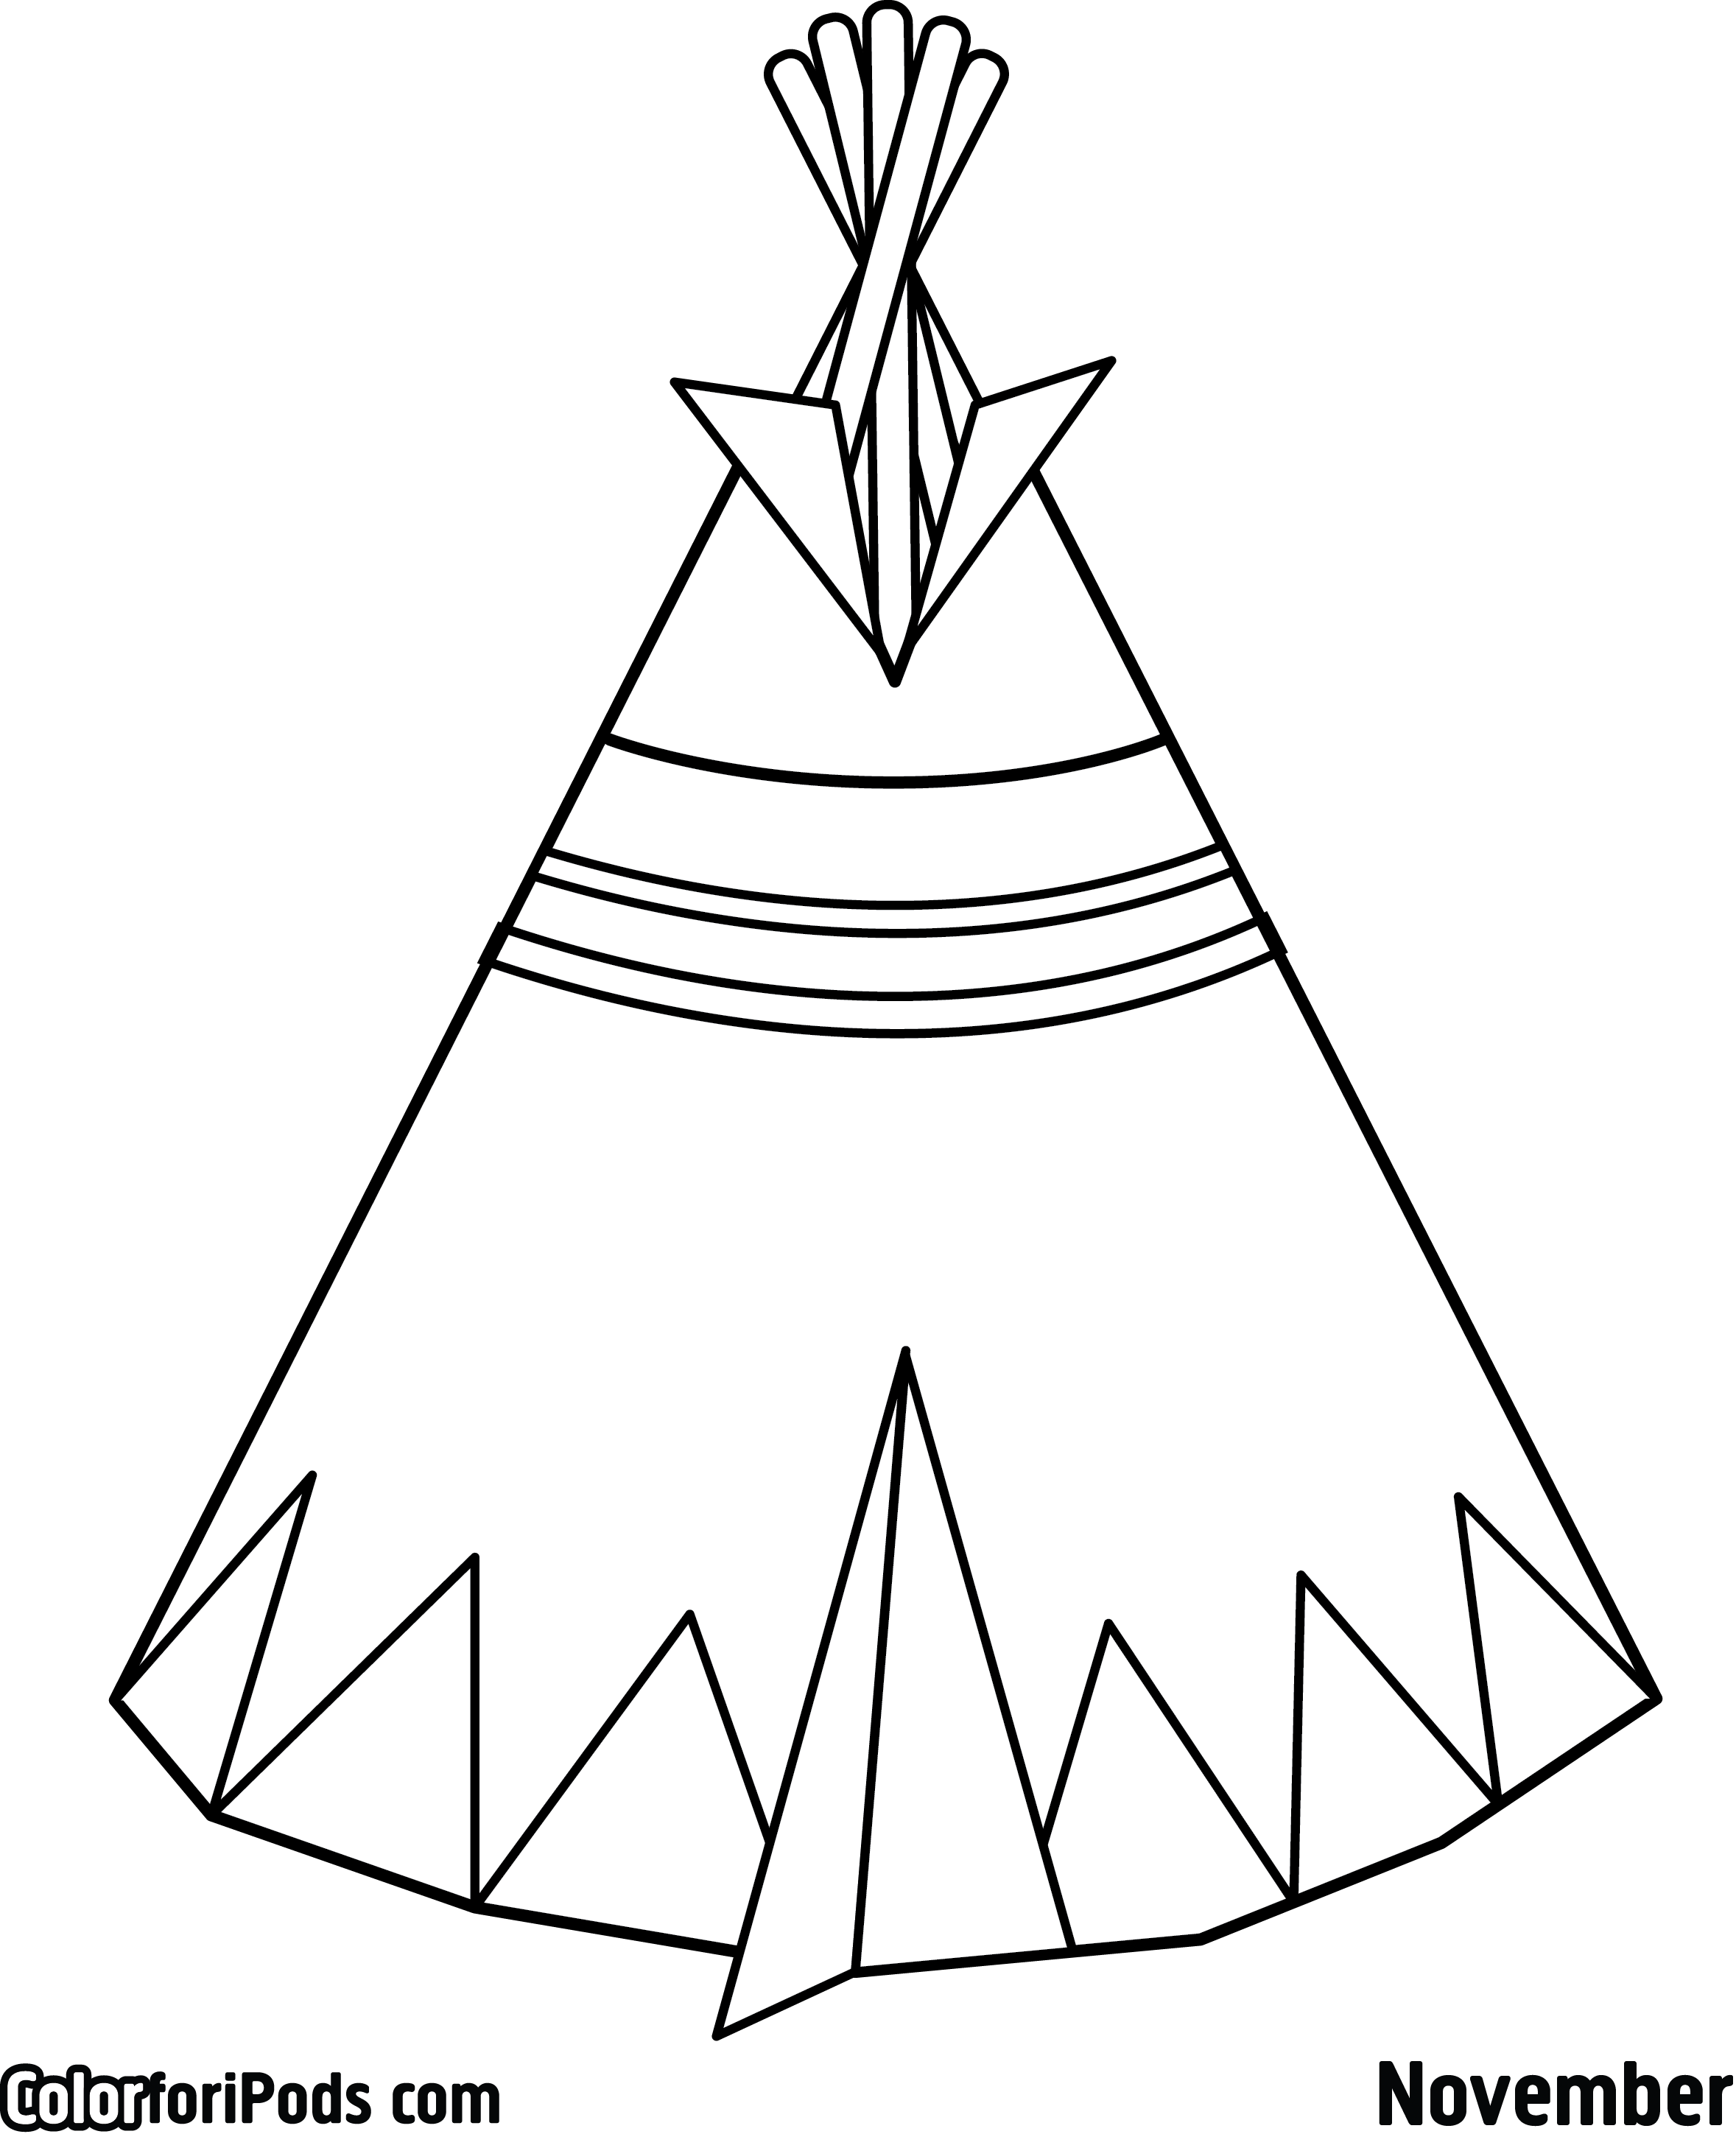 Superb Tee Pee Coloring Pages Printable With Native American